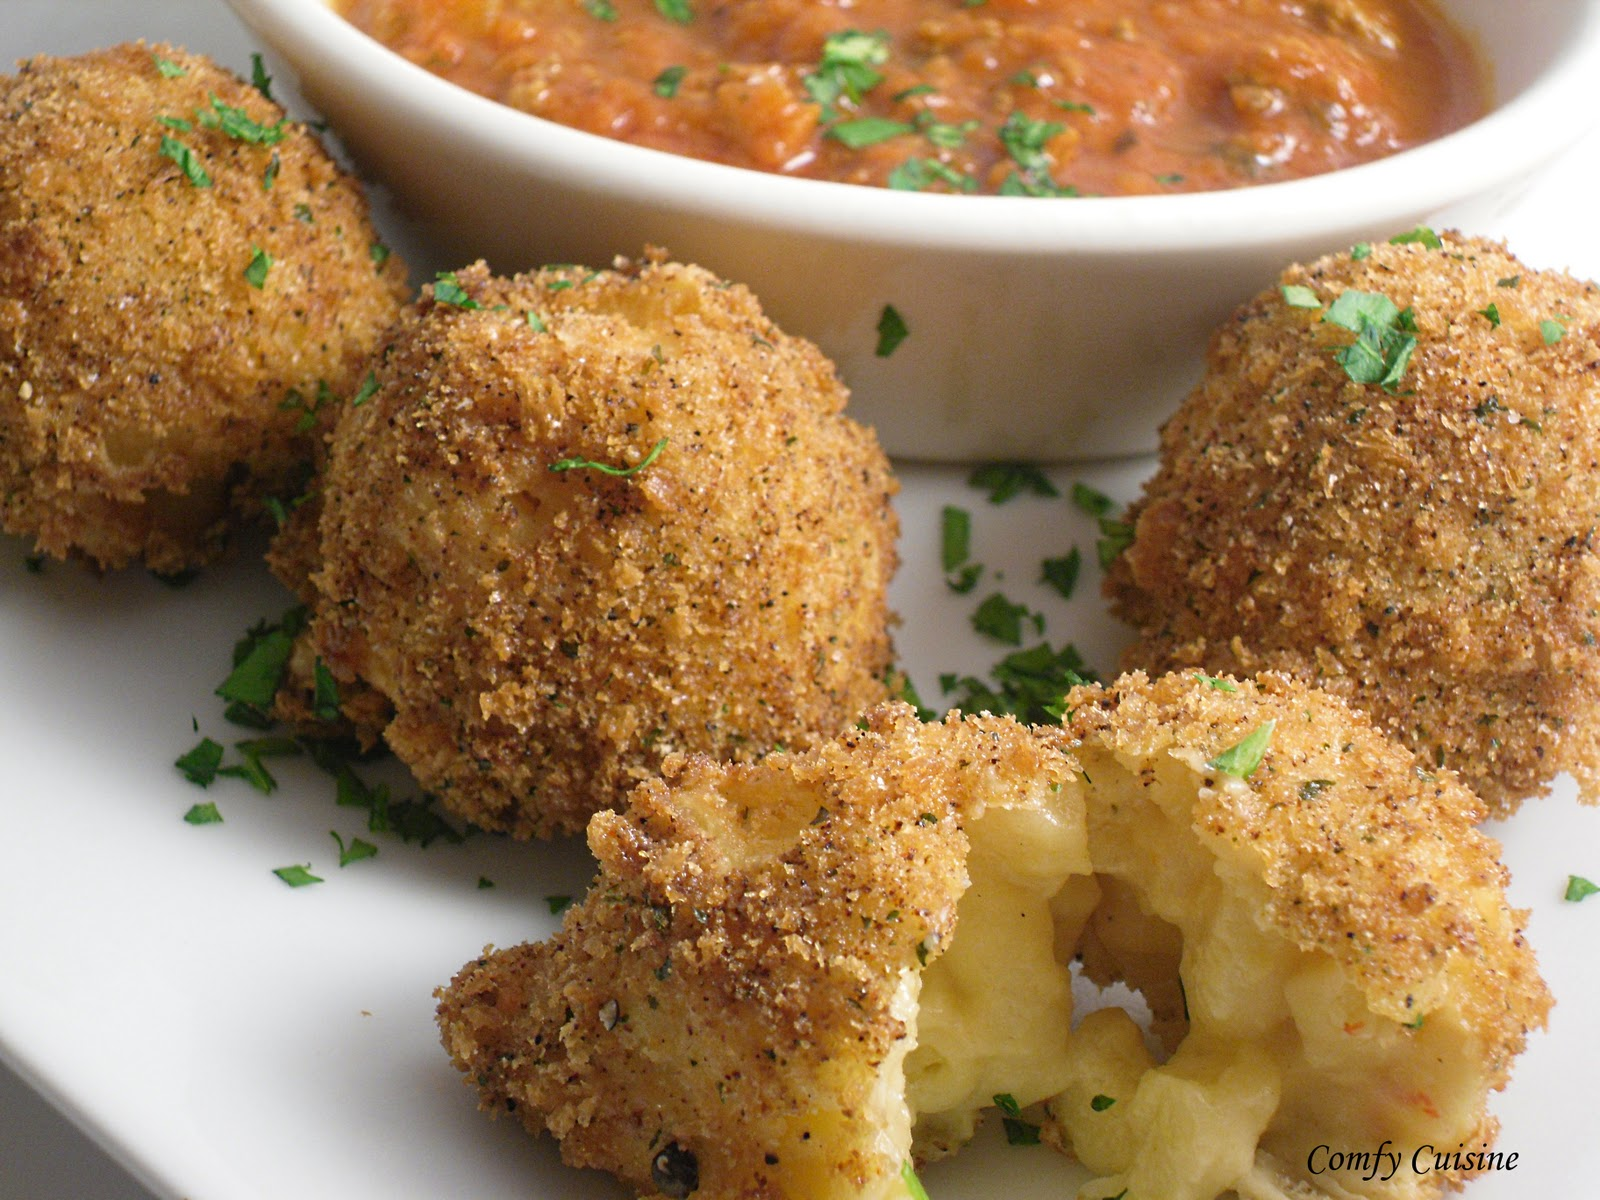 ... here is the recipe for the Fried Mac and Cheese Balls. Hope you enjoy